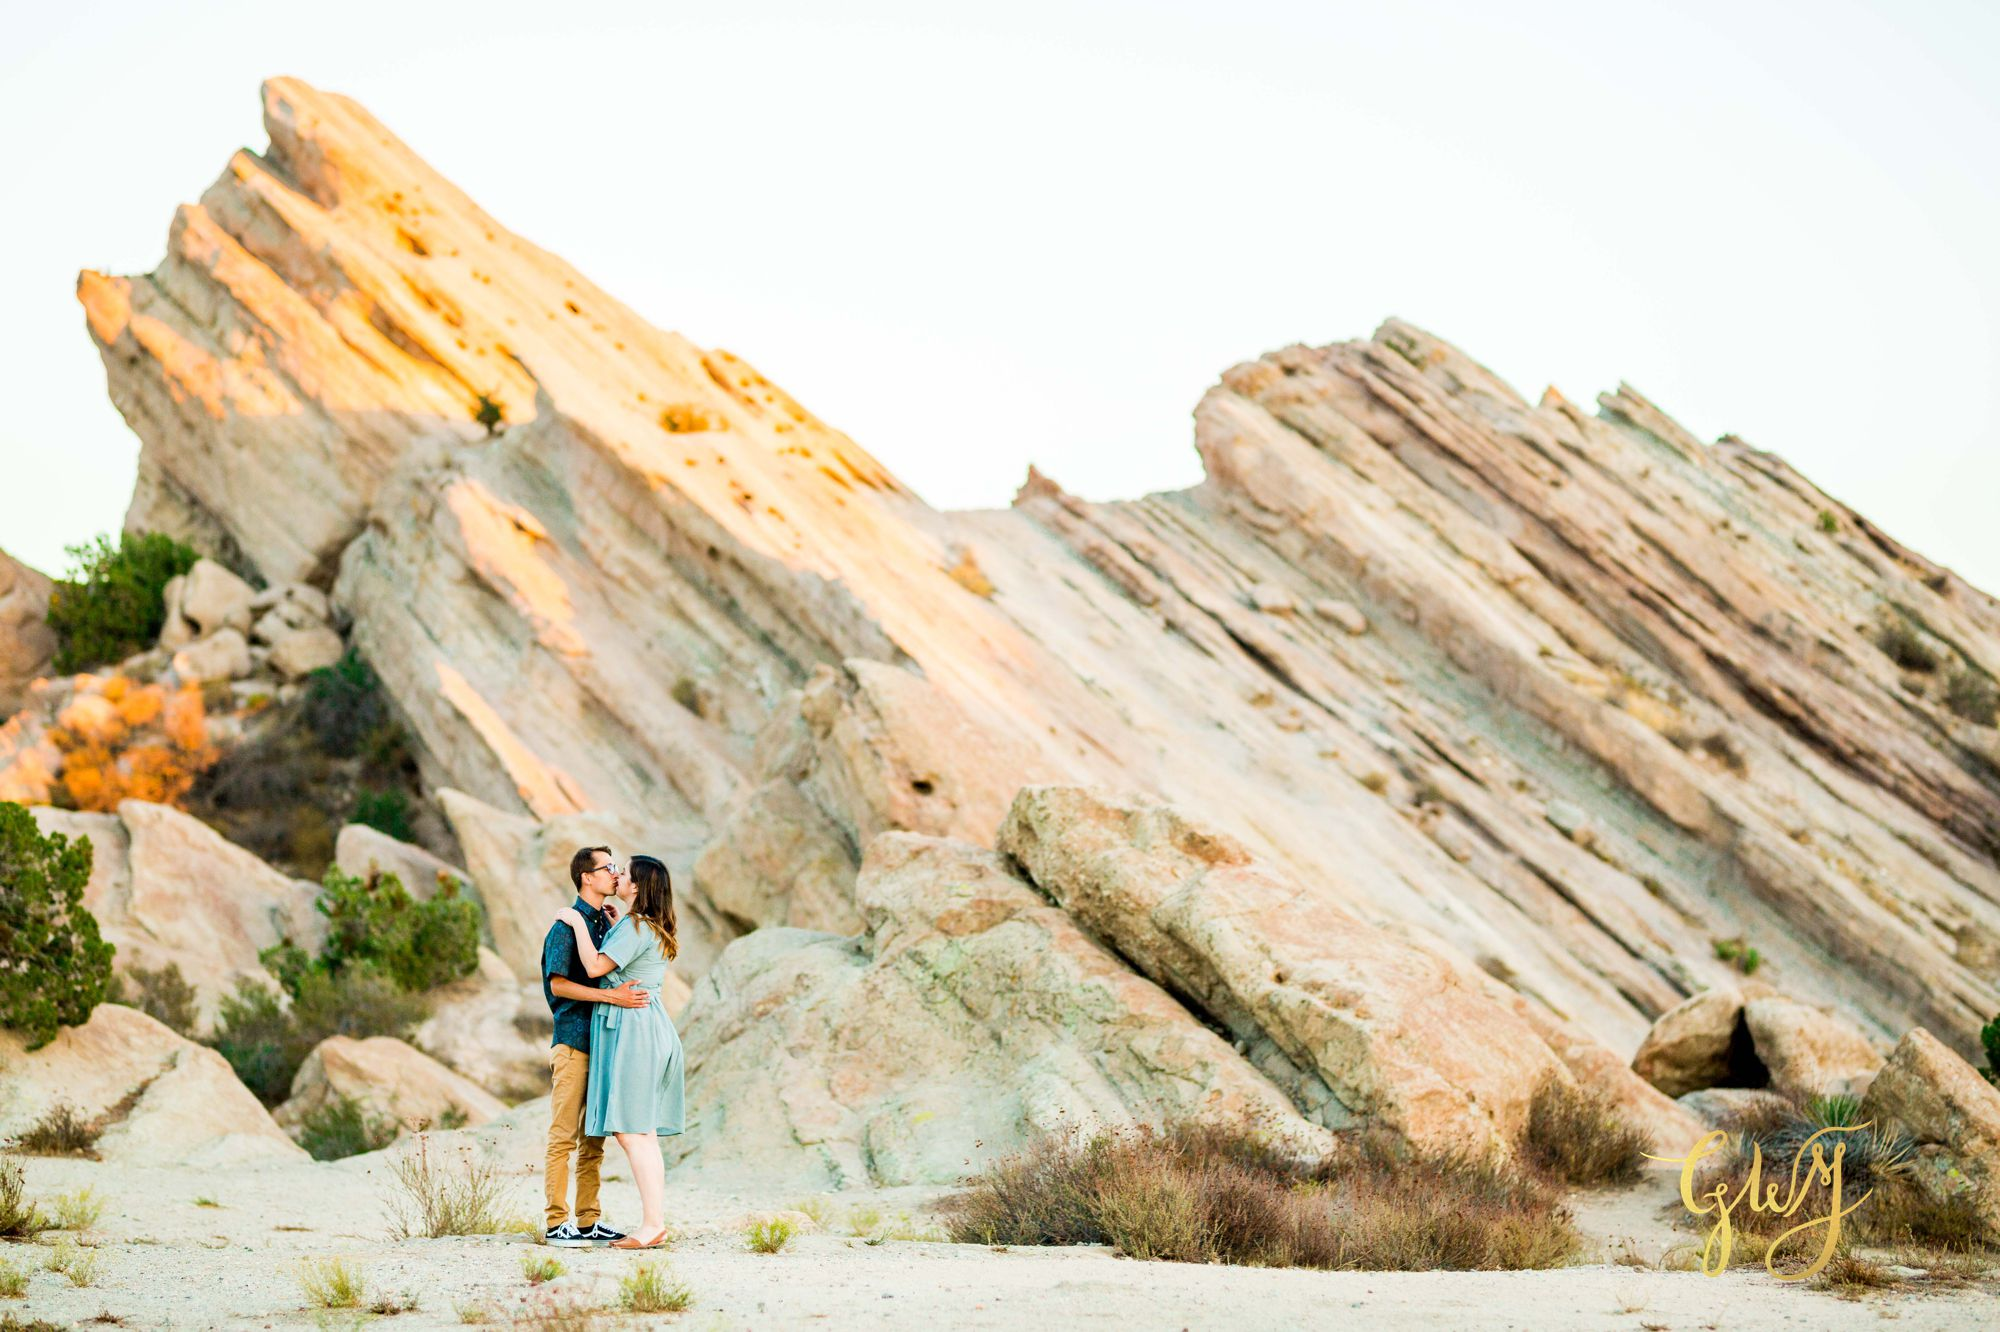 KJ + Maddie Vasquez Rocks Adventurous Hiking Outdoors Engagement Session by Glass Woods Media 16.jpg